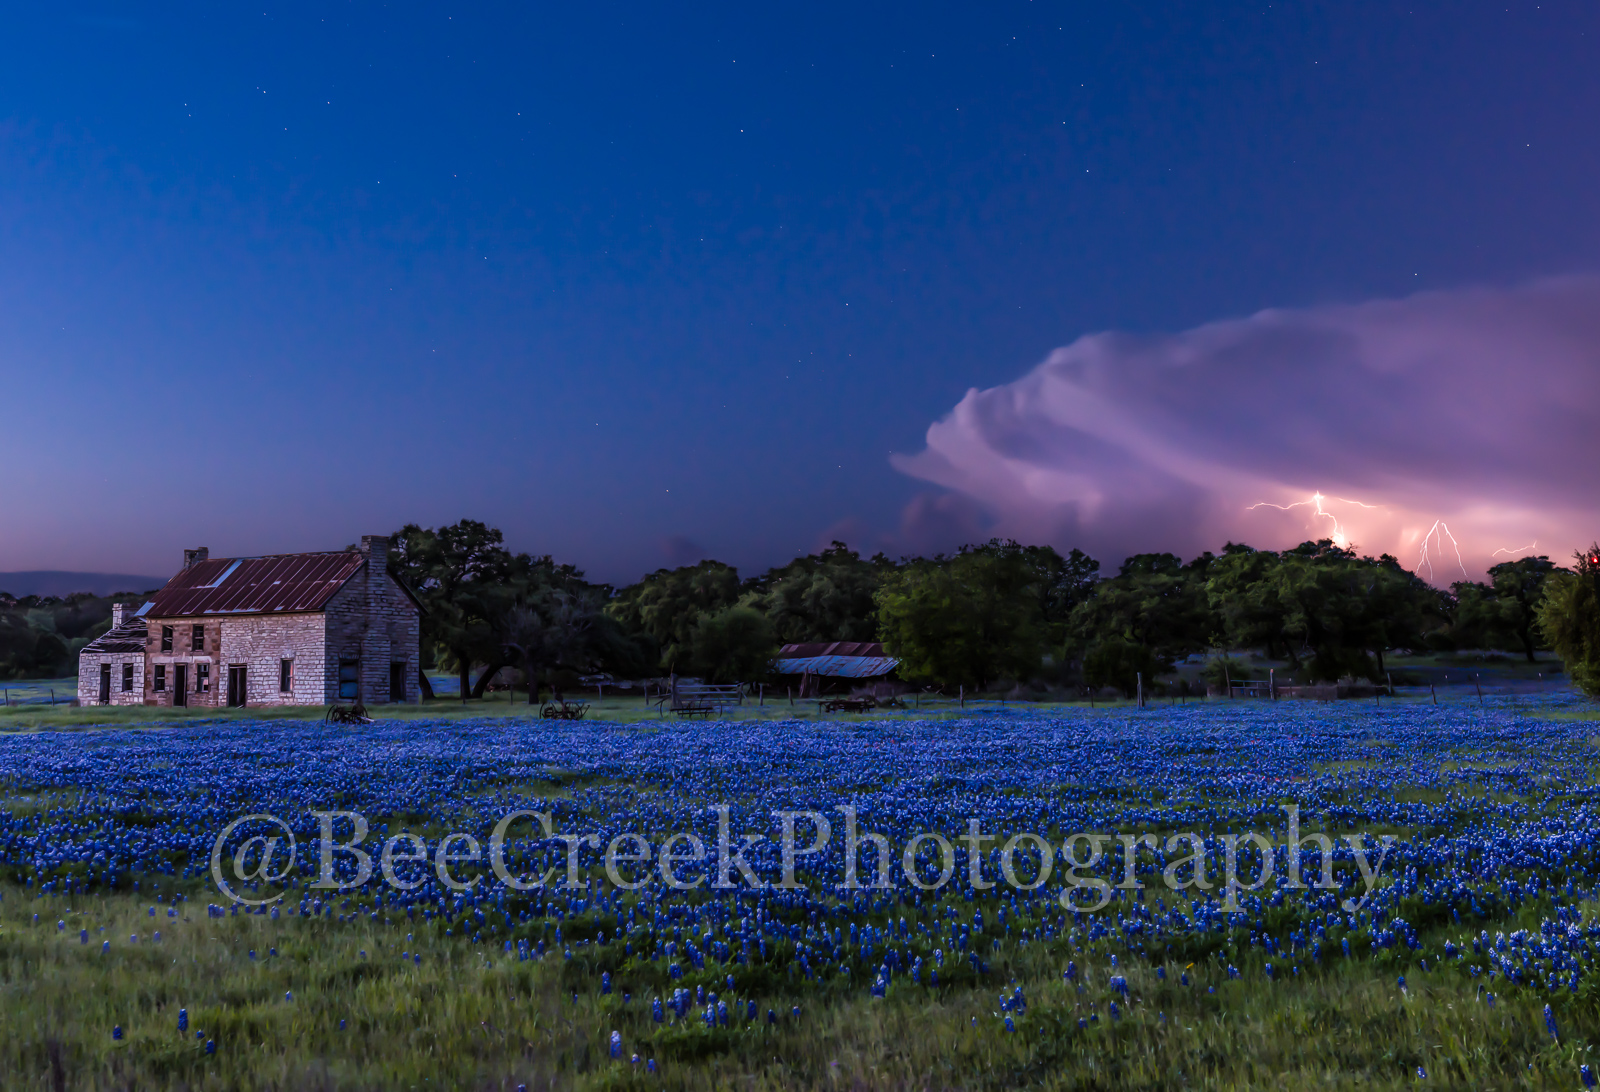 bluebonnets, blue bonnets, bluebonnet house, Marble falls, lightning strike, storm clouds, stormy, old farm house, Texas hill country., hill country, wildflowers, spring, storm cloud,